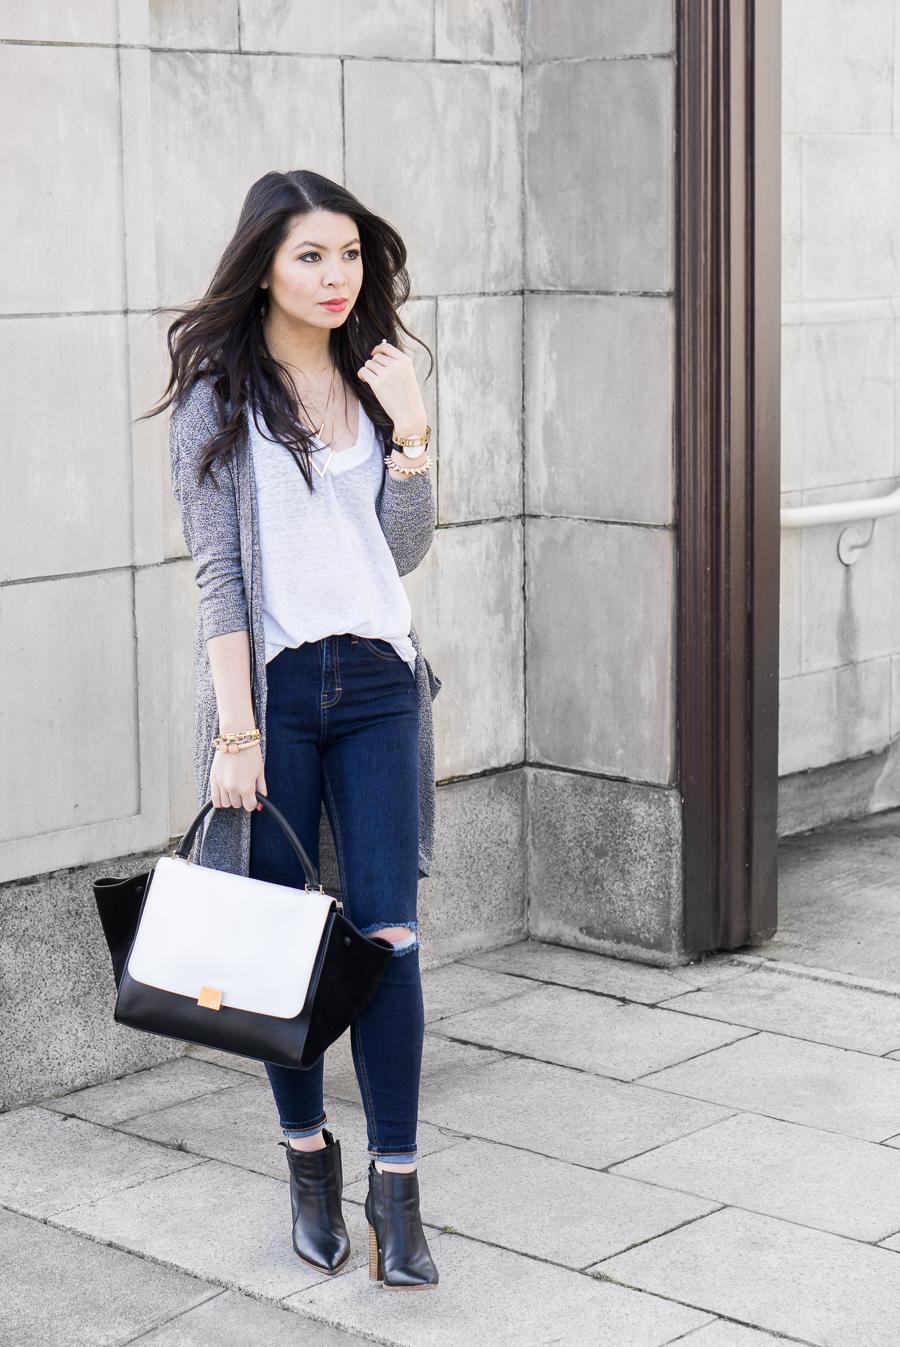 Simple Style TShirt Outfit | Just A Tina Bit